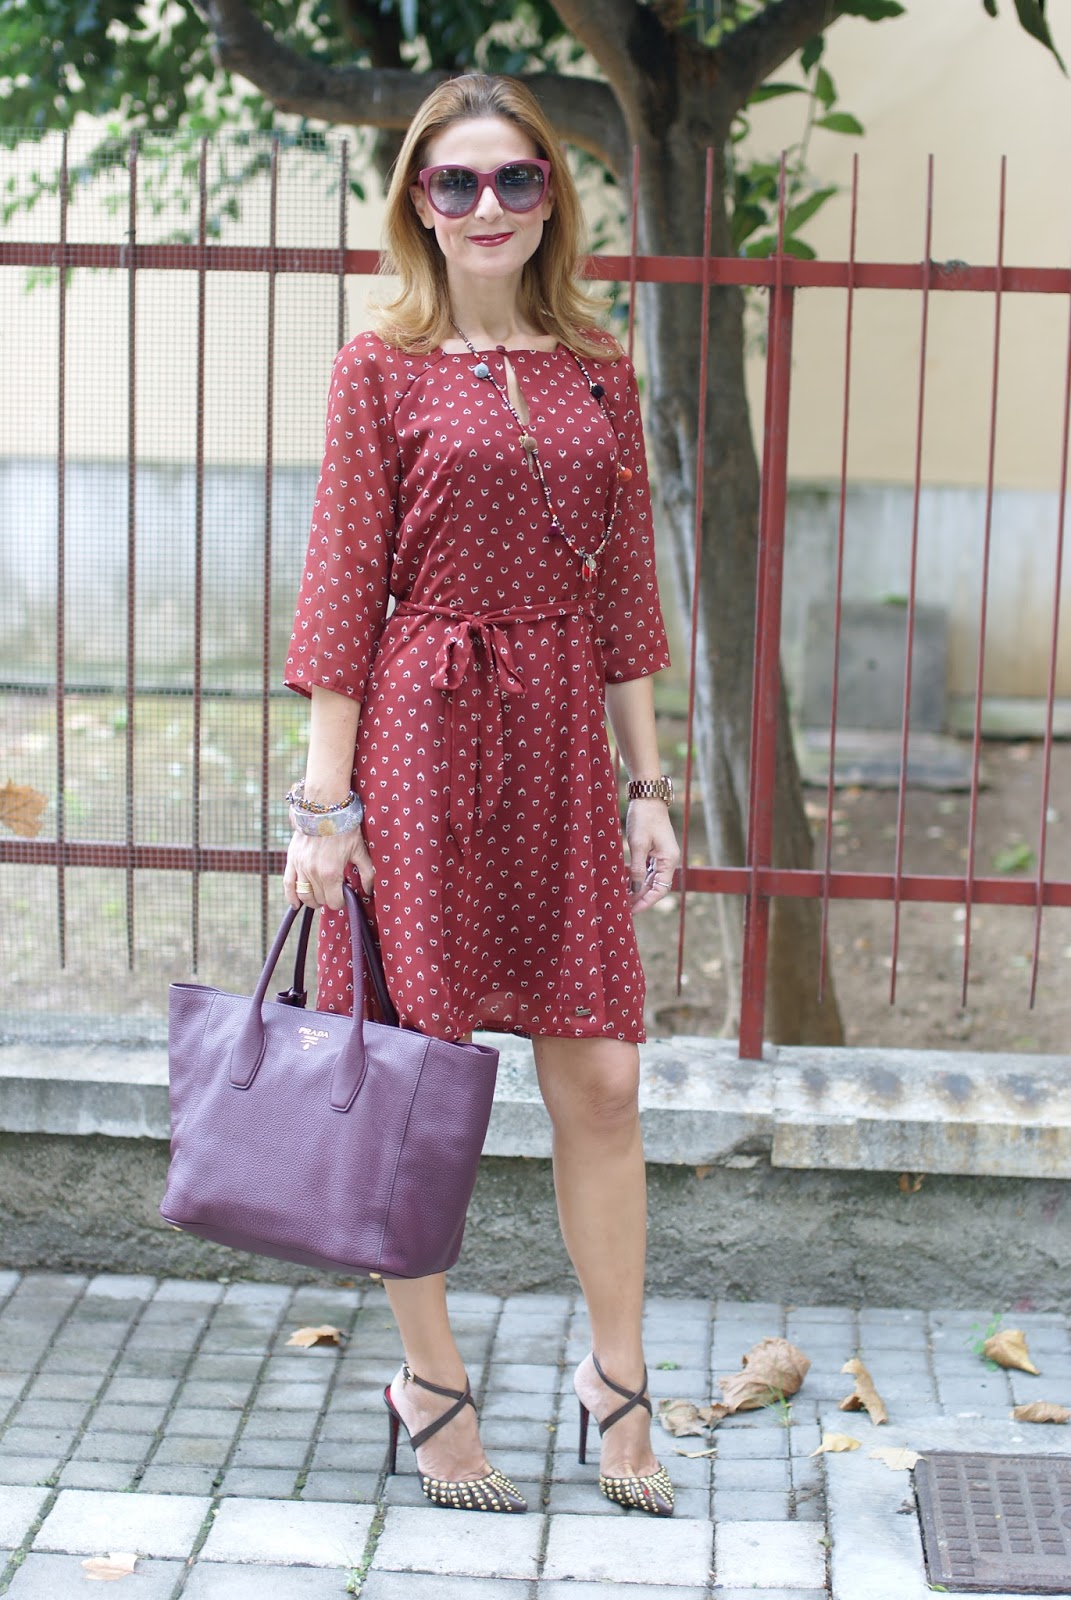 Mismash rust dress, studded heels and burgundy Prada tote on Fashion and Cookies fashion blog, fashion blogger style